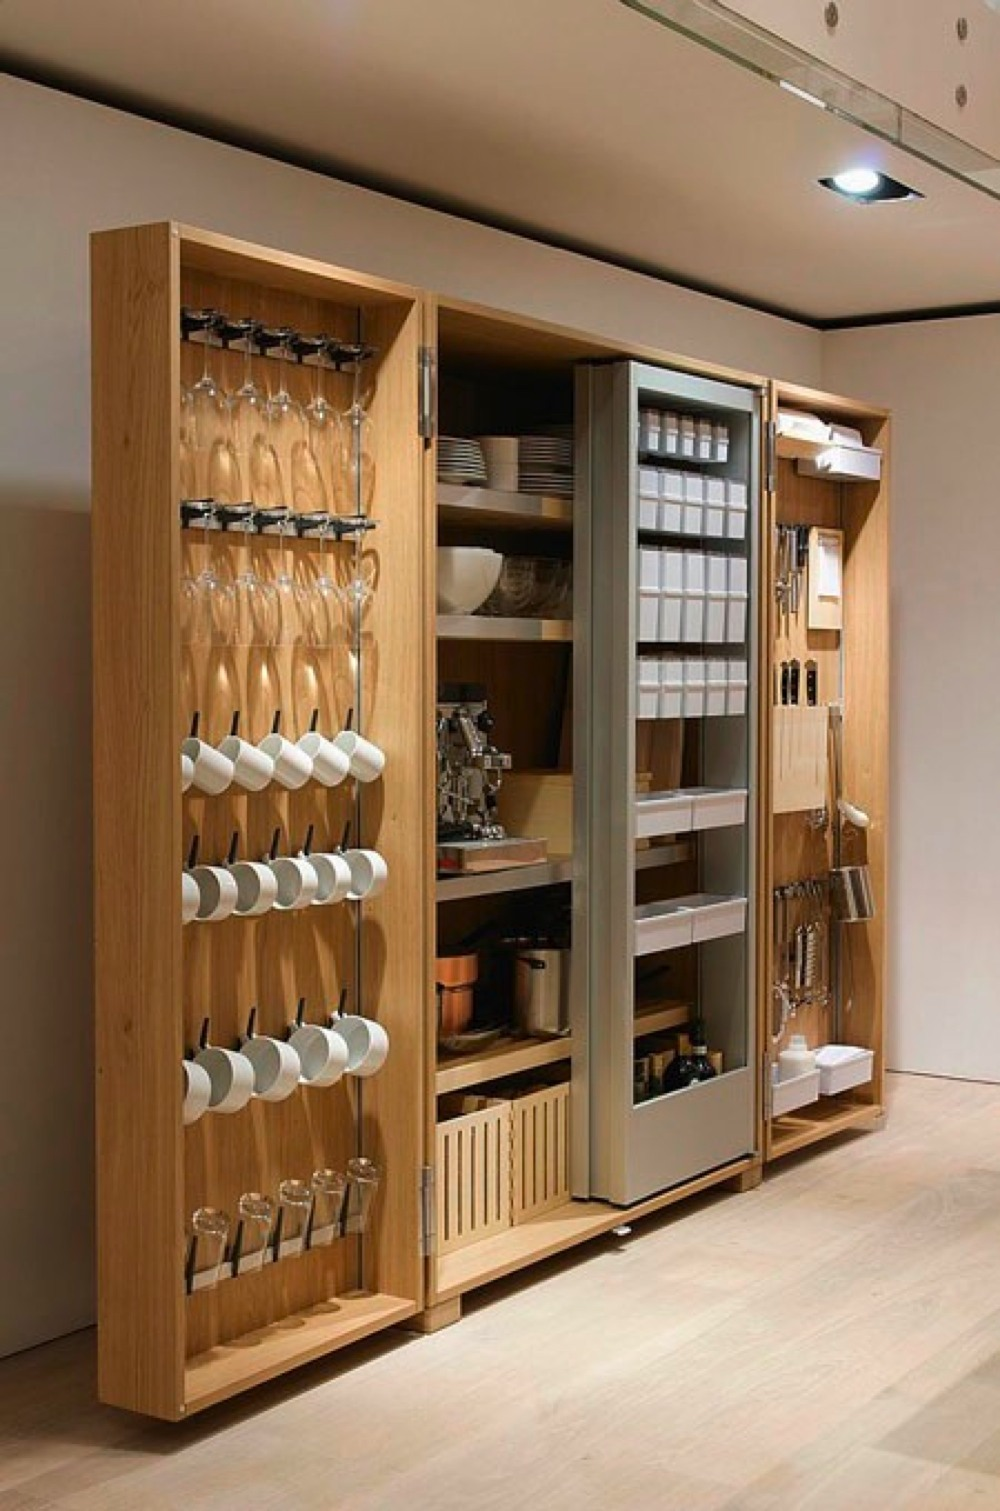 Watch besides Cuisine Ilot Central moreover Kuechenarchitektur Bulthaup B3 together with Luxury Apartment Contemporary Kitchen Cheshire in addition Kitchen. on bulthaup kitchen cabinets